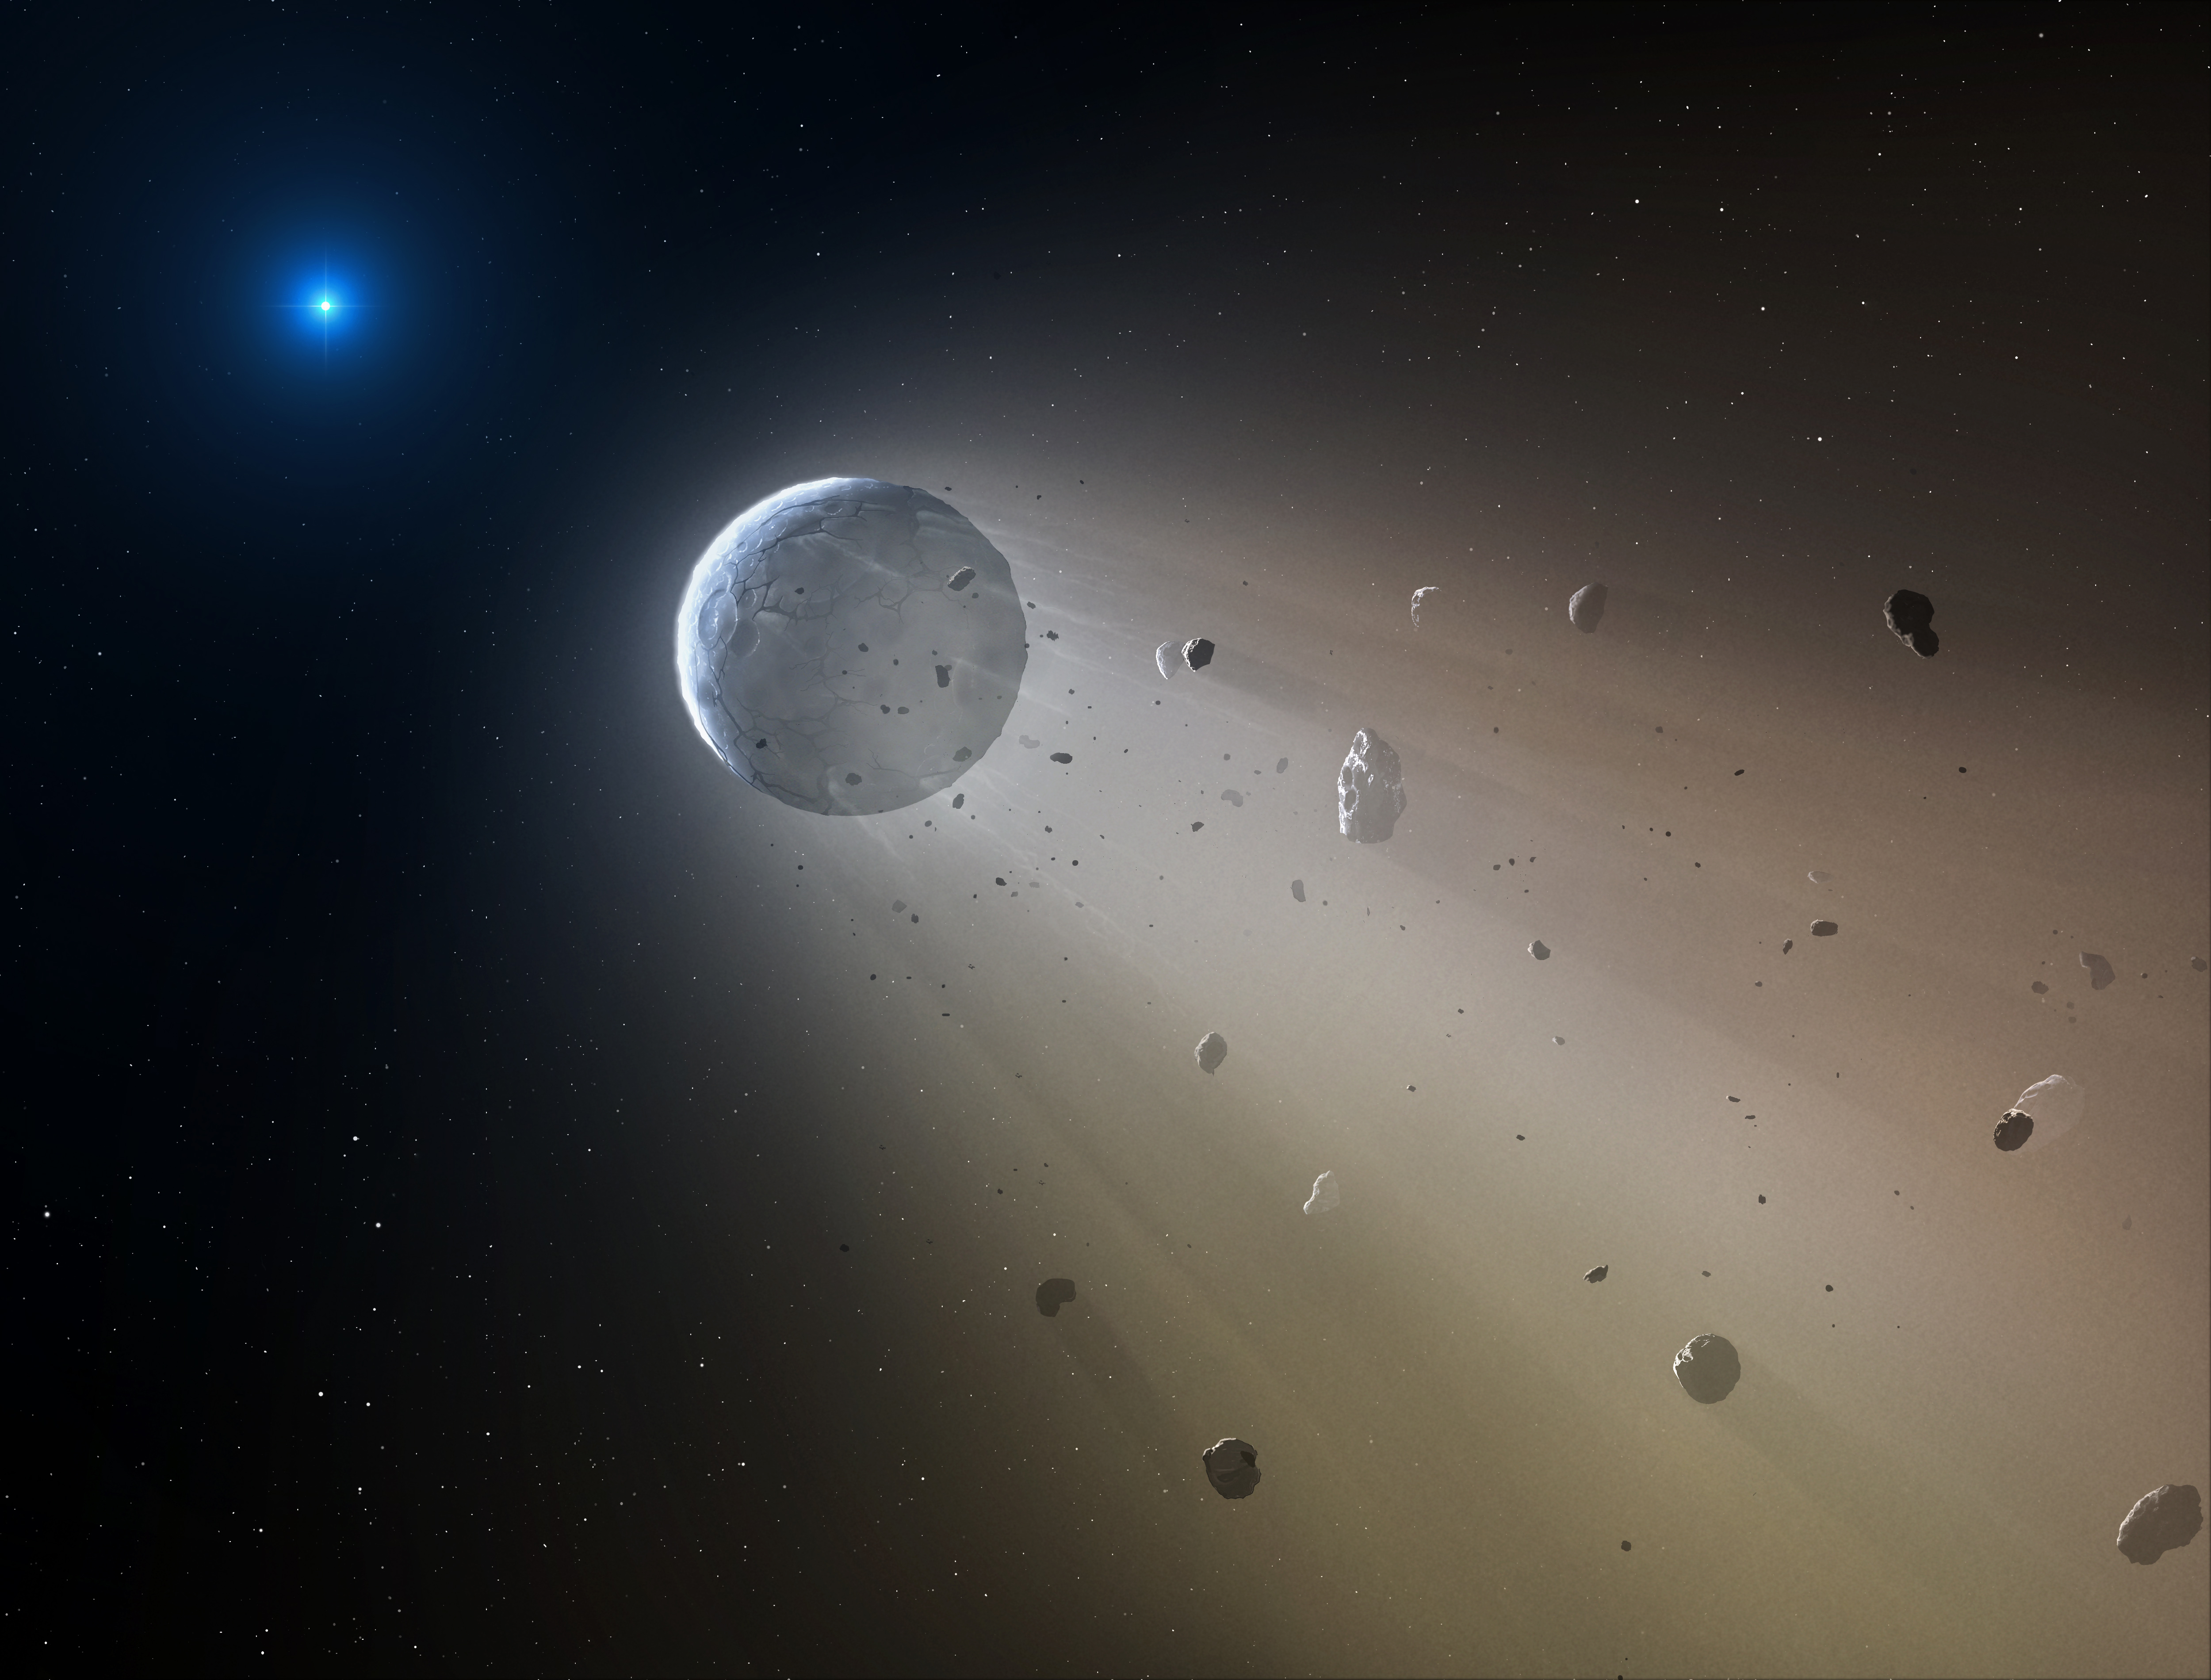 In this artist's conception, a tiny rocky object vaporizes as it orbits a white dwarf star. Astronomers have detected the first planetary object transiting a white dwarf using data from the K2 mission. Slowly the object will disintegrate, leaving a dusting of metals on the surface of the star.